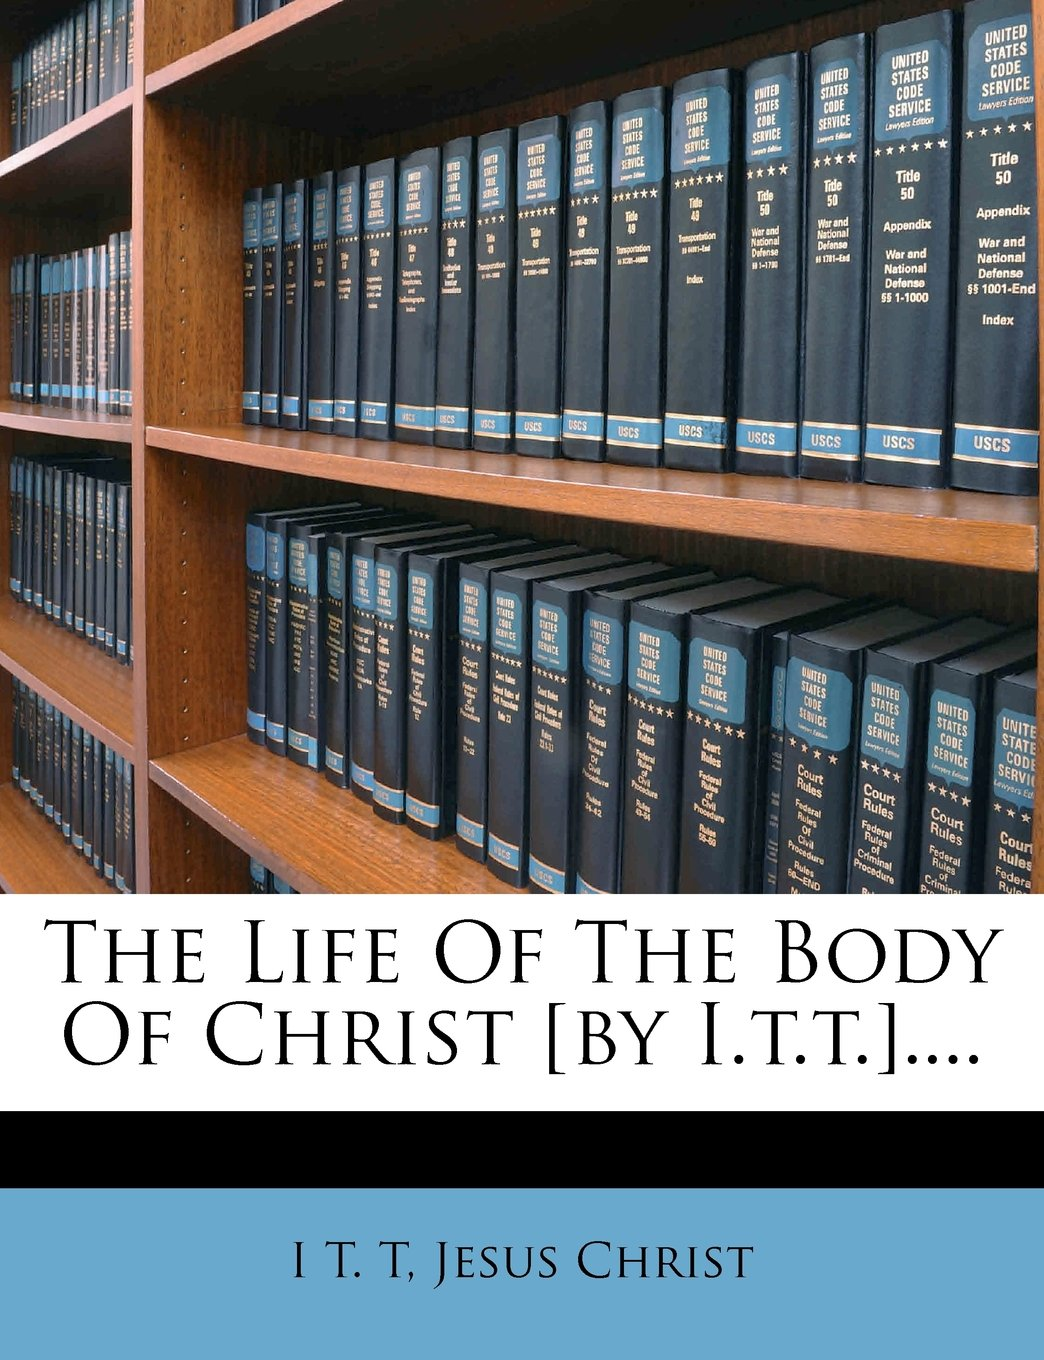 The Life Of The Body Of Christ [by I.t.t.].... pdf